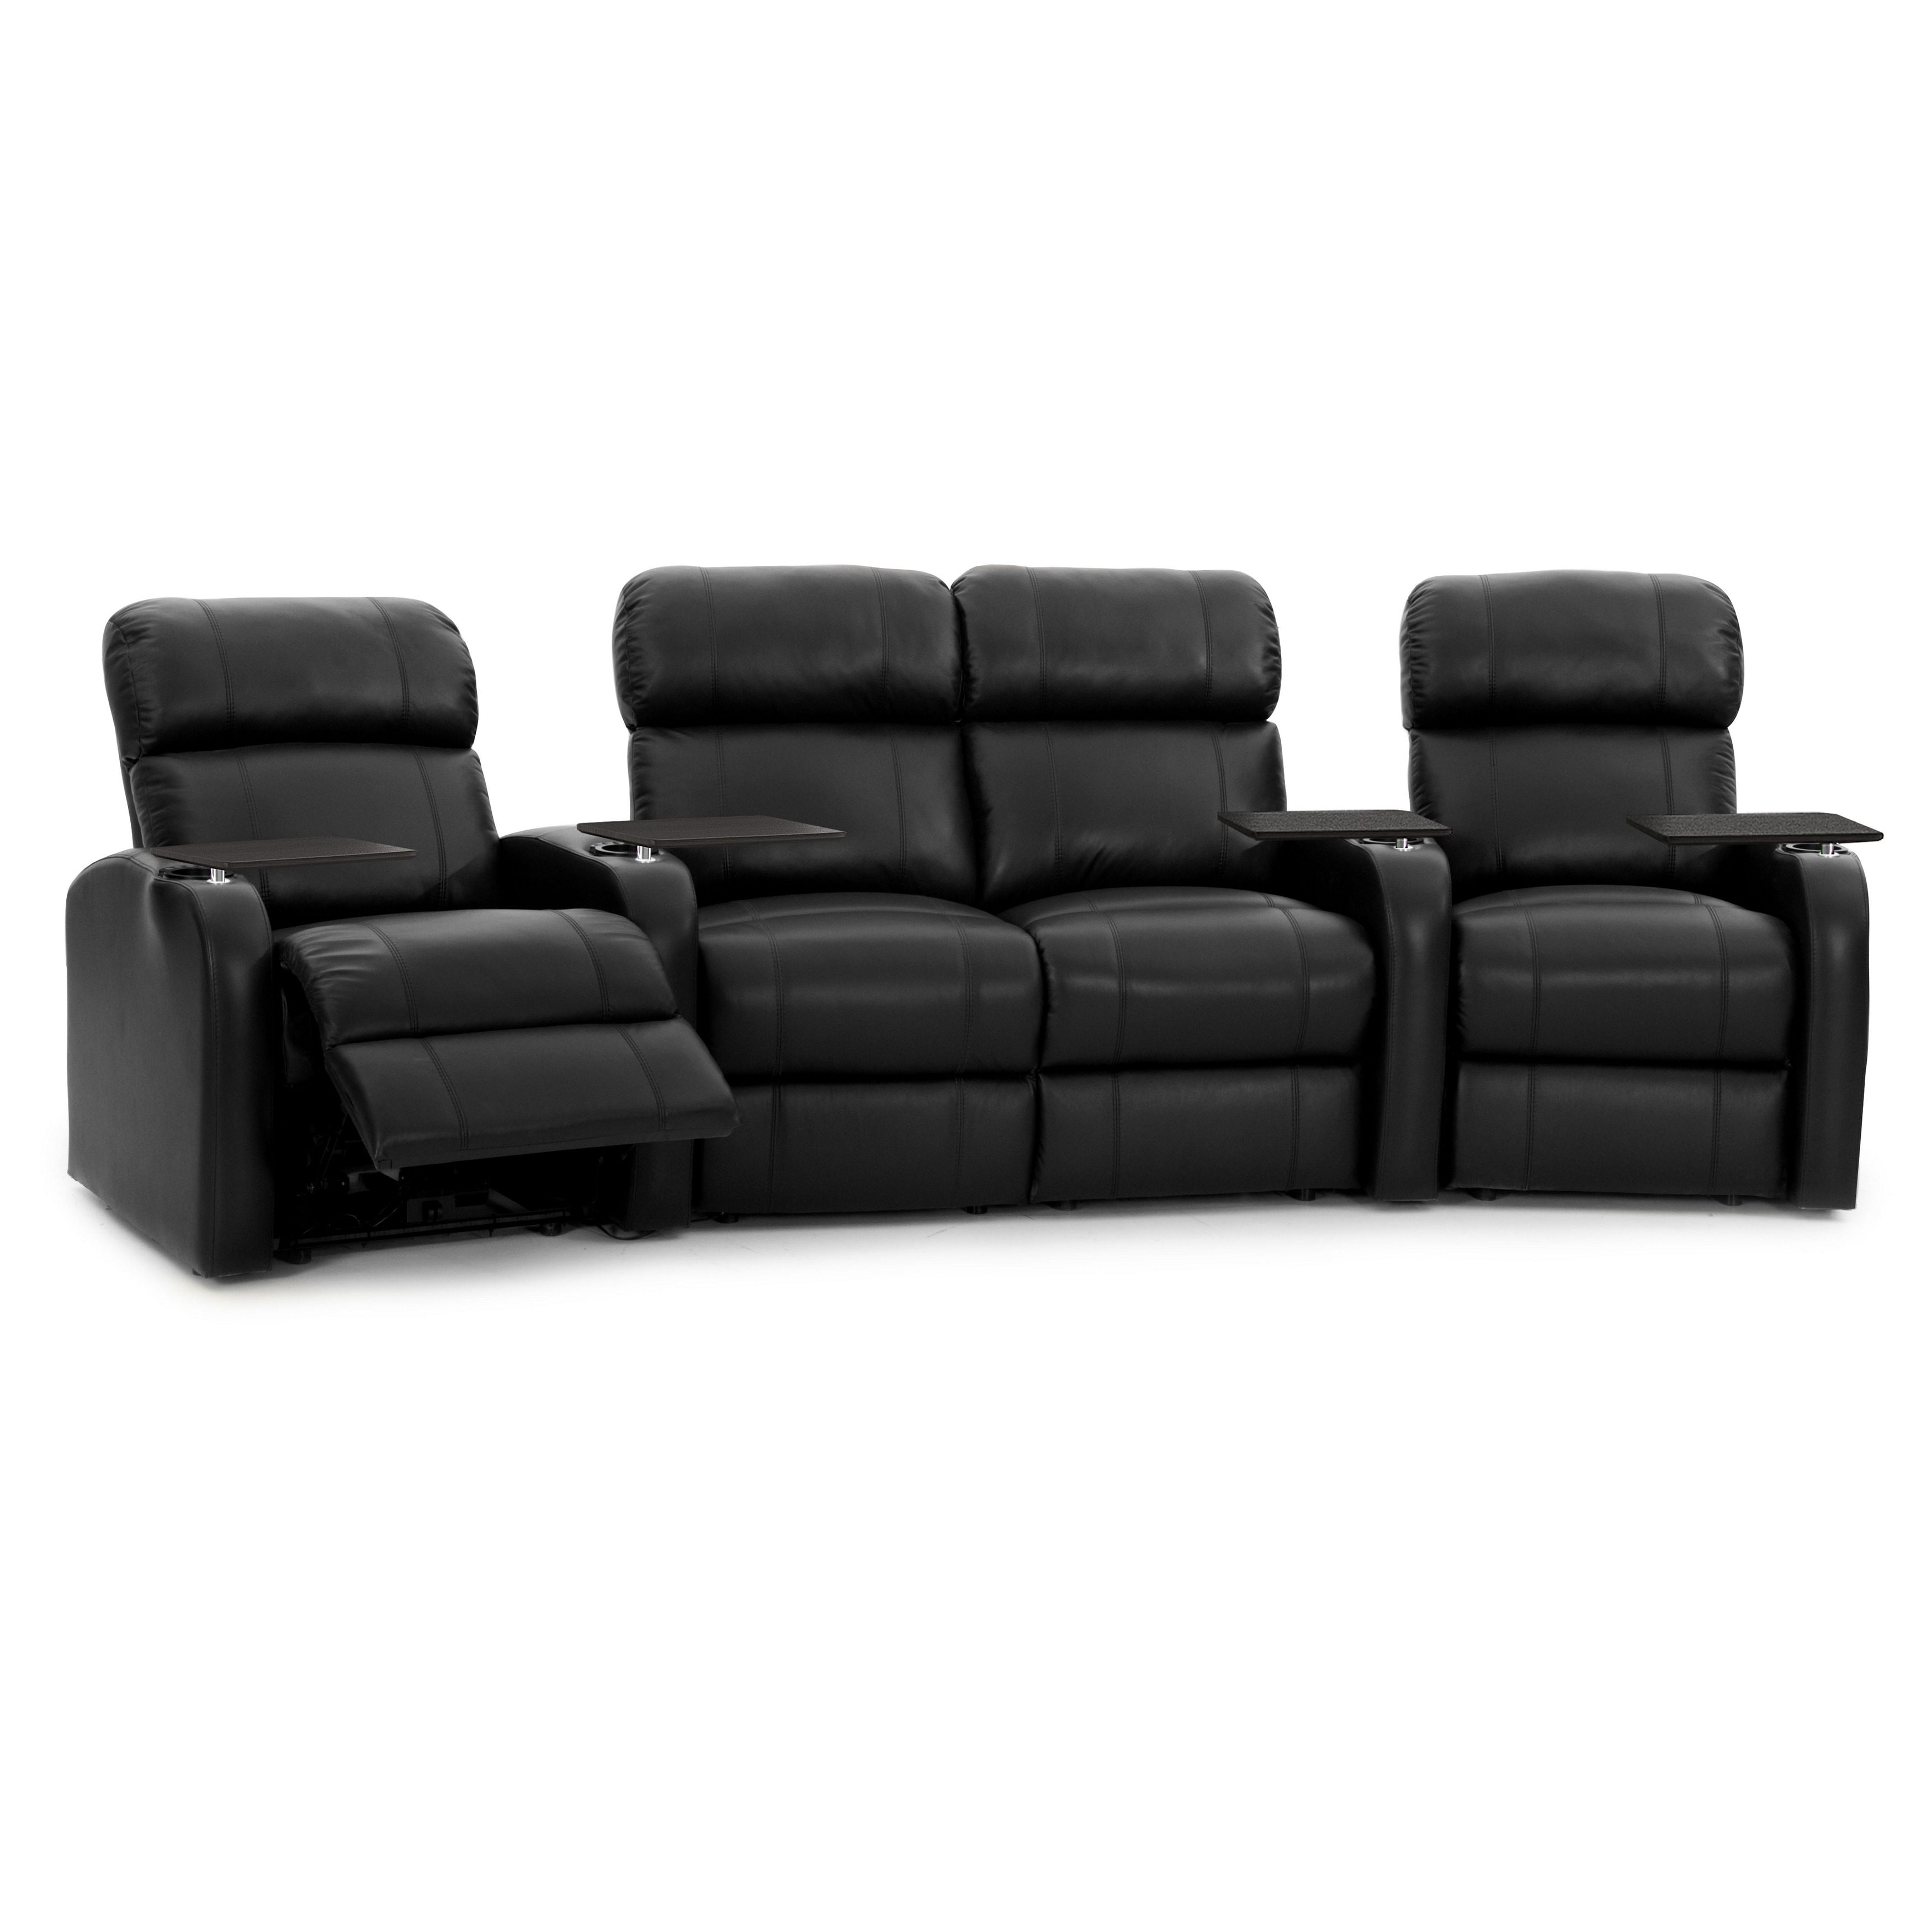 Octane Diesel XS950 Manual Leather Home Theater Seating S...